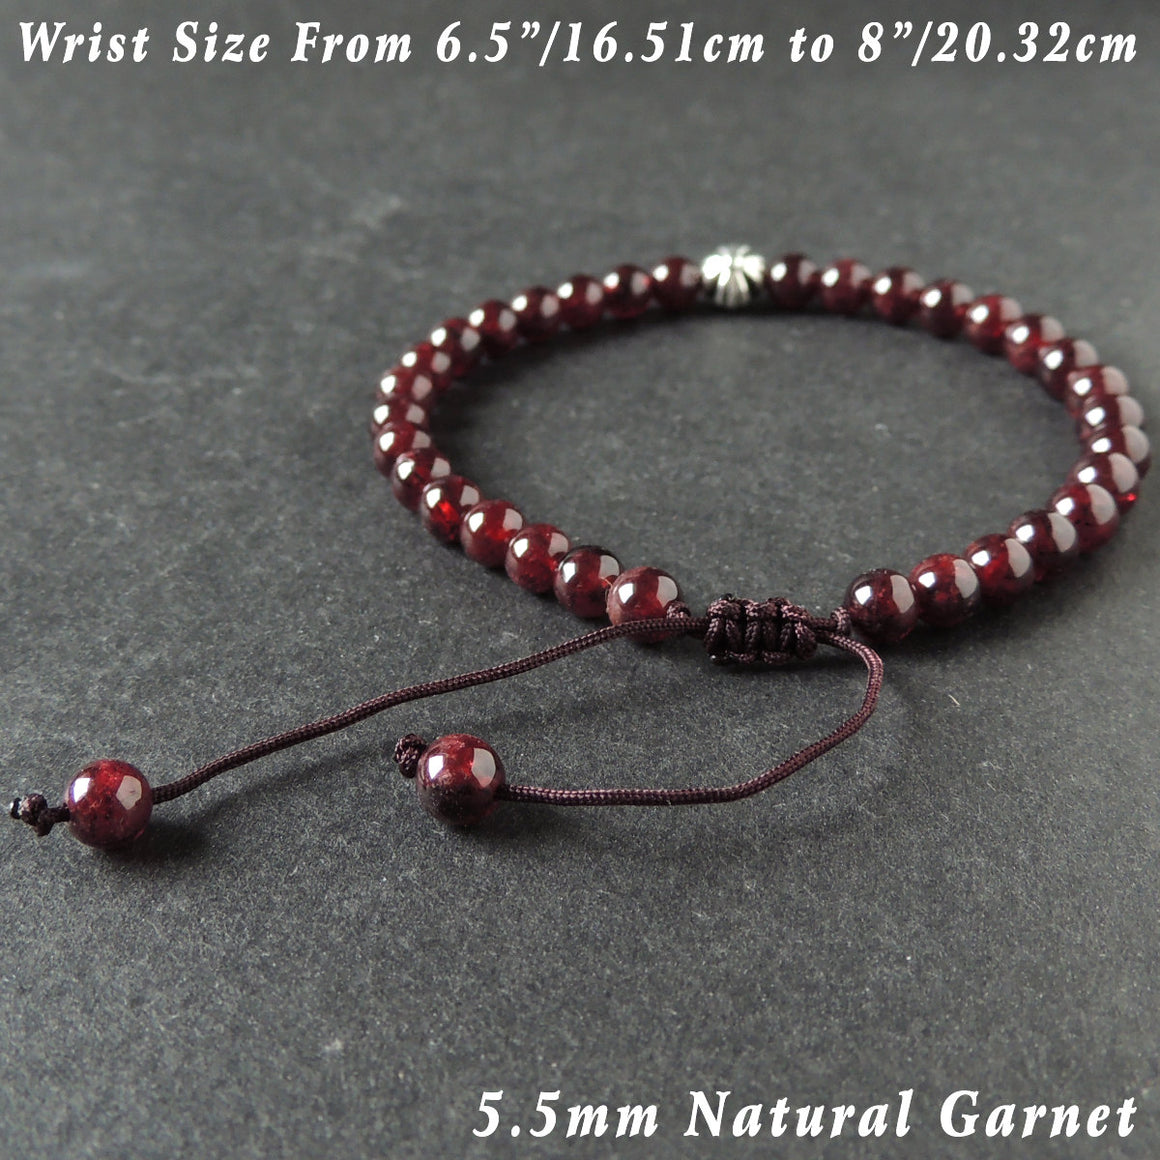 5.5mm Natural Garnet Adjustable Braided Gemstone Bracelet with Tibetan Silver Cross Bead - Handmade by Gem & Silver TSB286